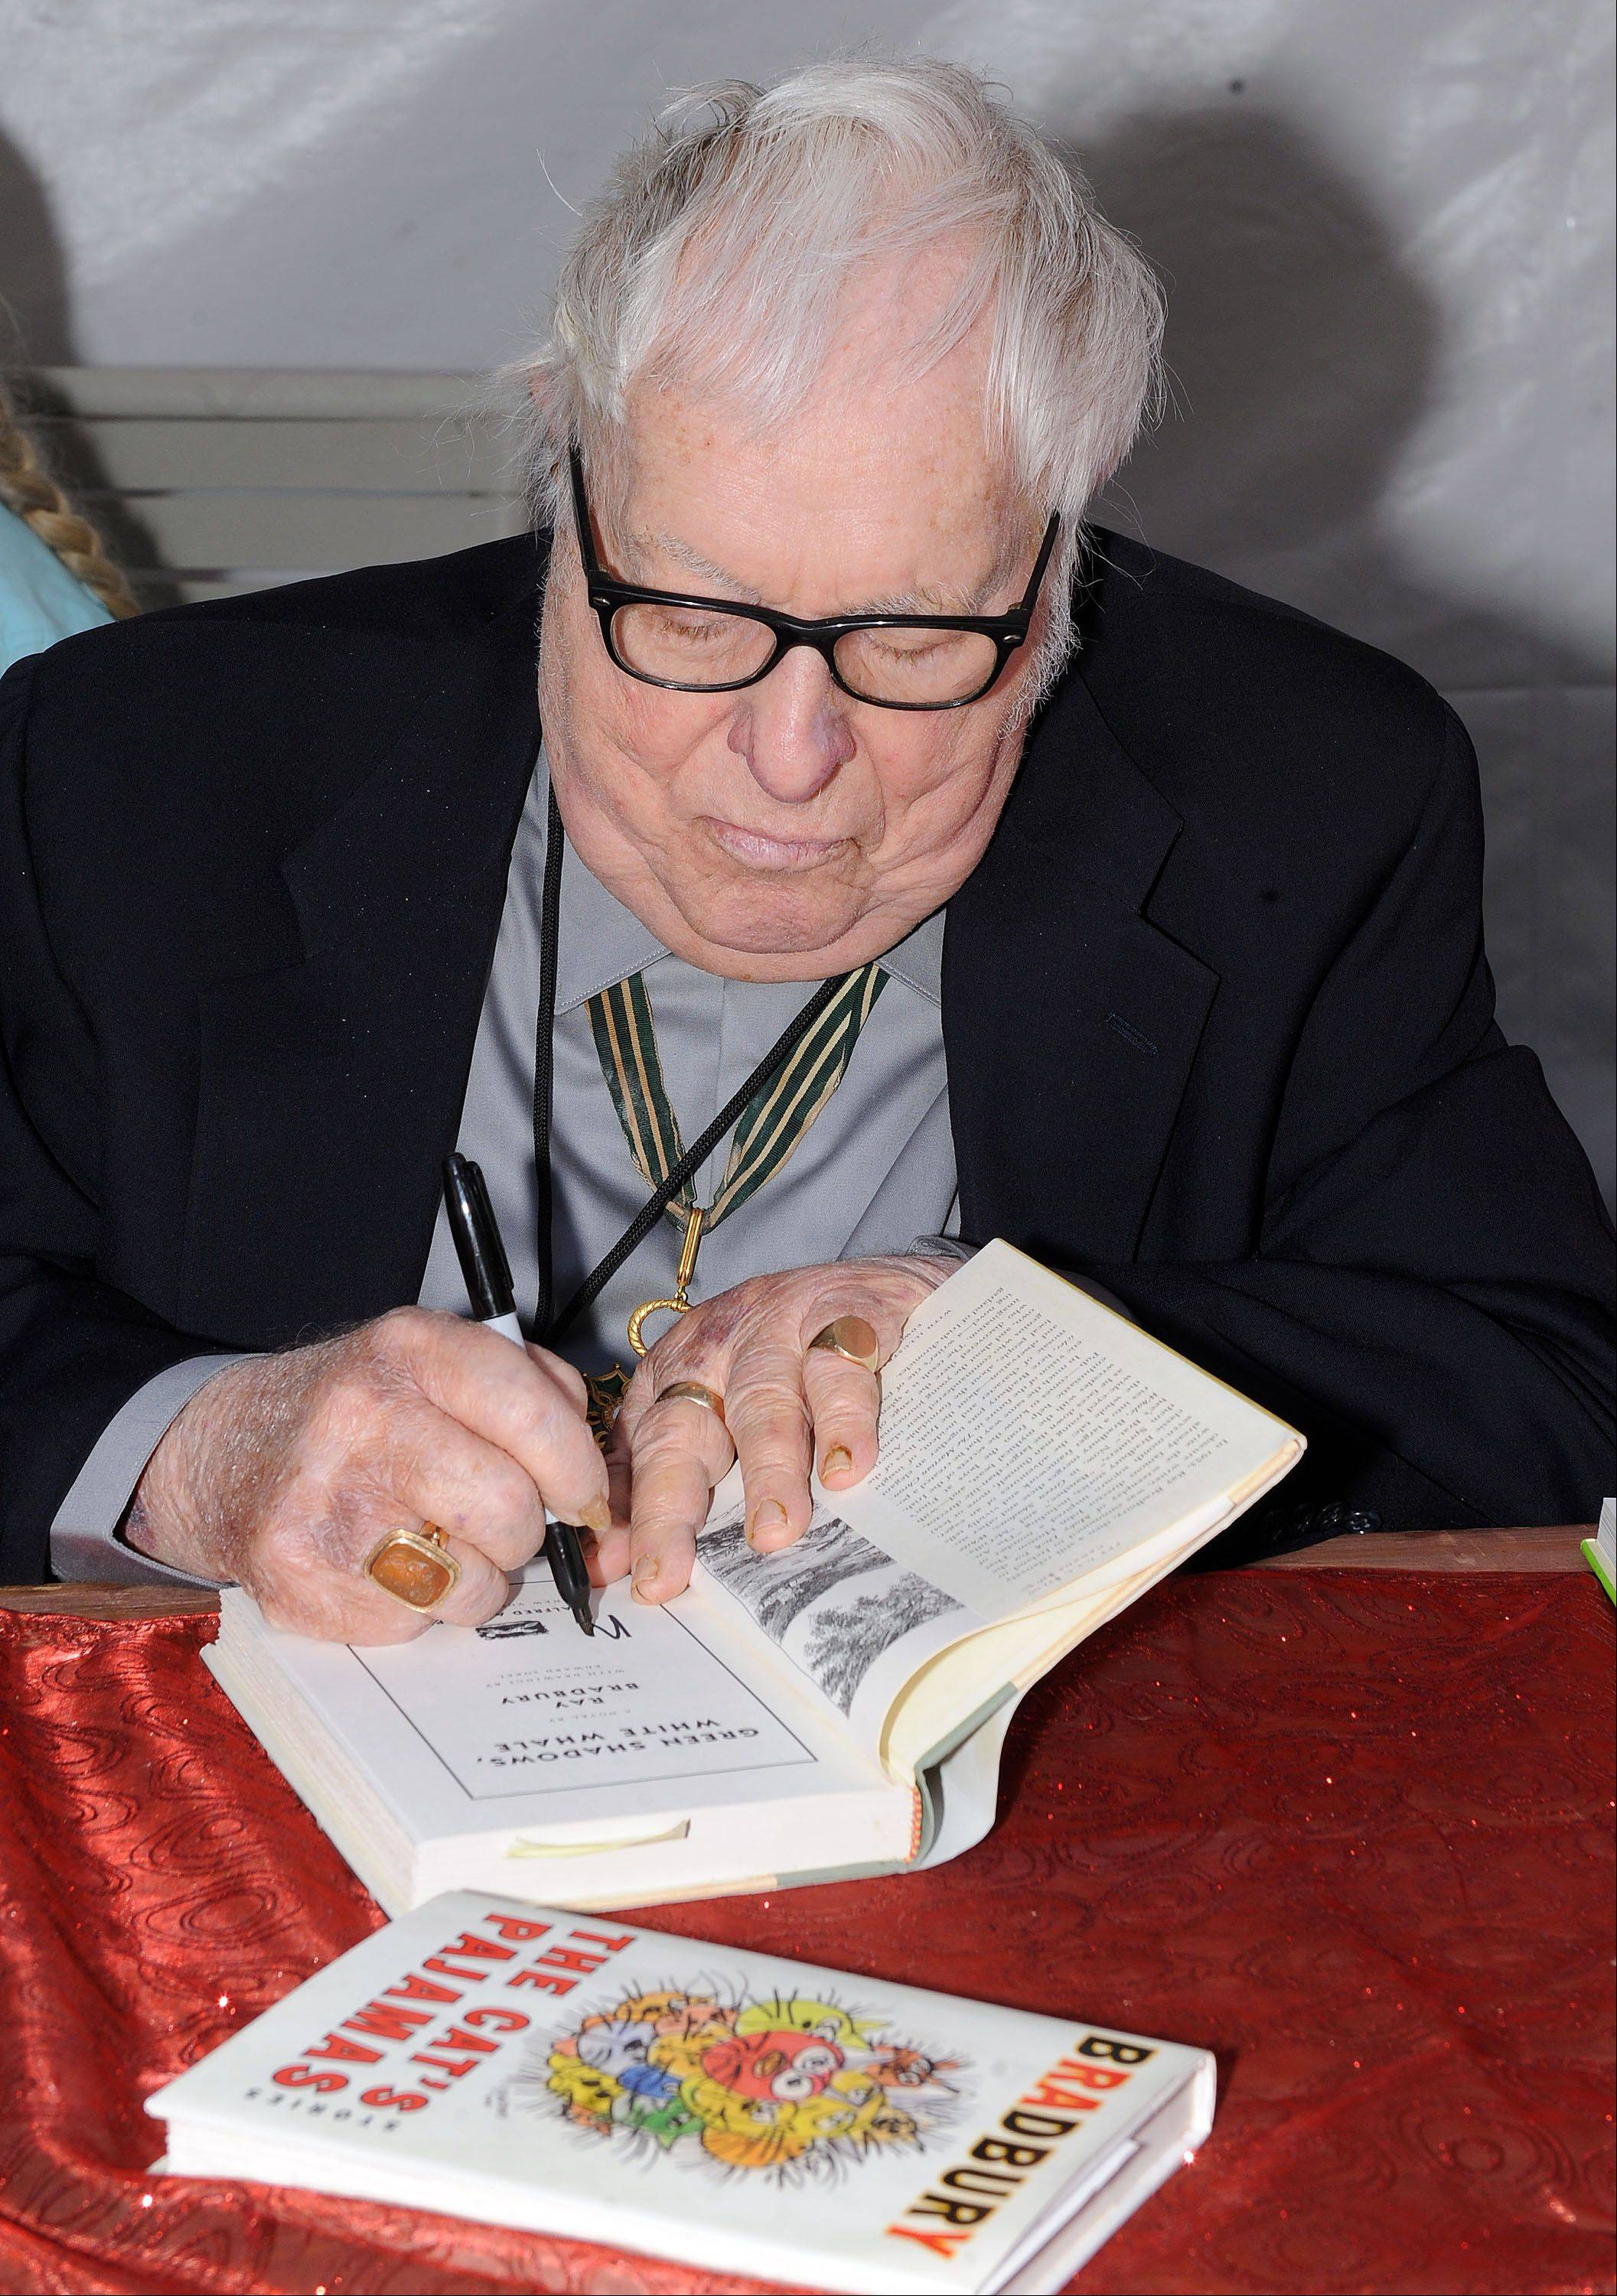 Author Ray Bradbury attends The Los Angeles Times Festival of Books at The University of California Los Angeles Saturday, April 25, 2009, in Los Angeles, Calif.